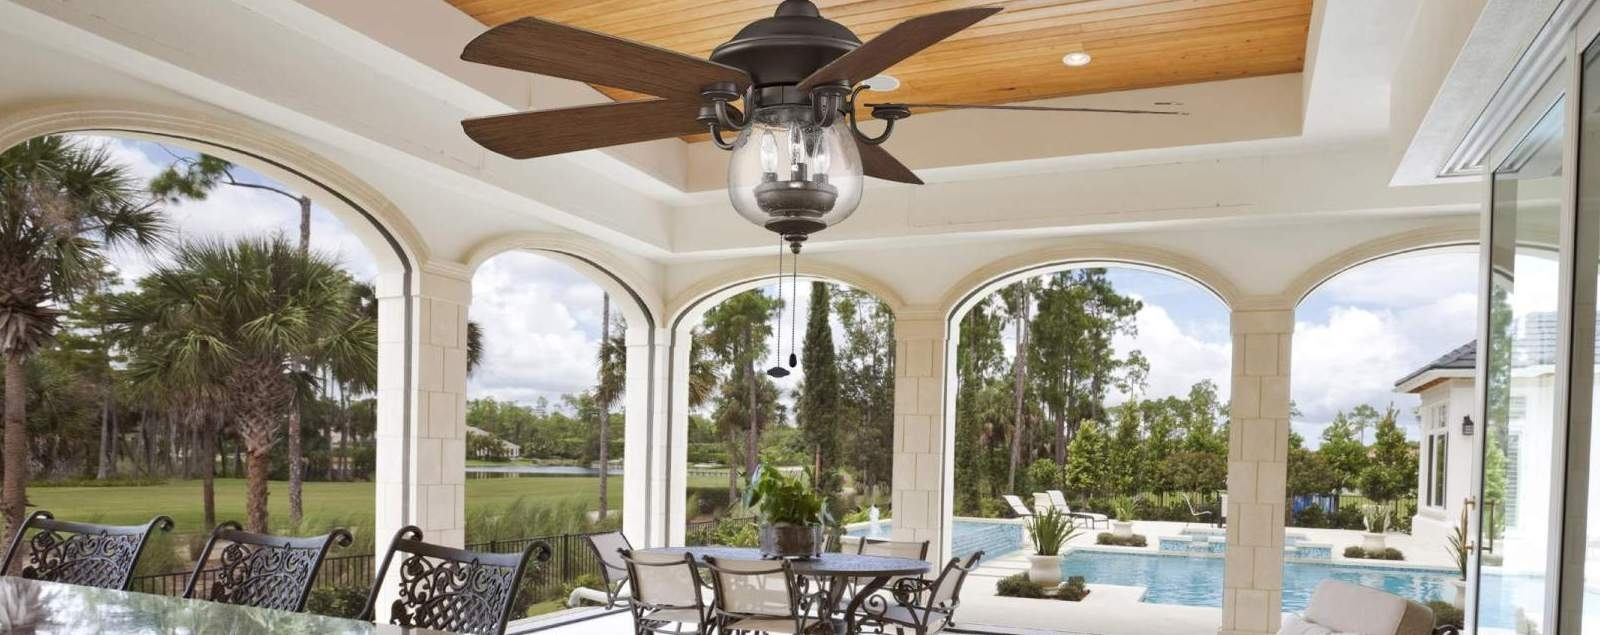 Outdoor Ceiling Fans – Shop Wet, Dry, And Damp Rated Outdoor Fans In Famous Outdoor Ceiling Fans With Hook (View 19 of 20)